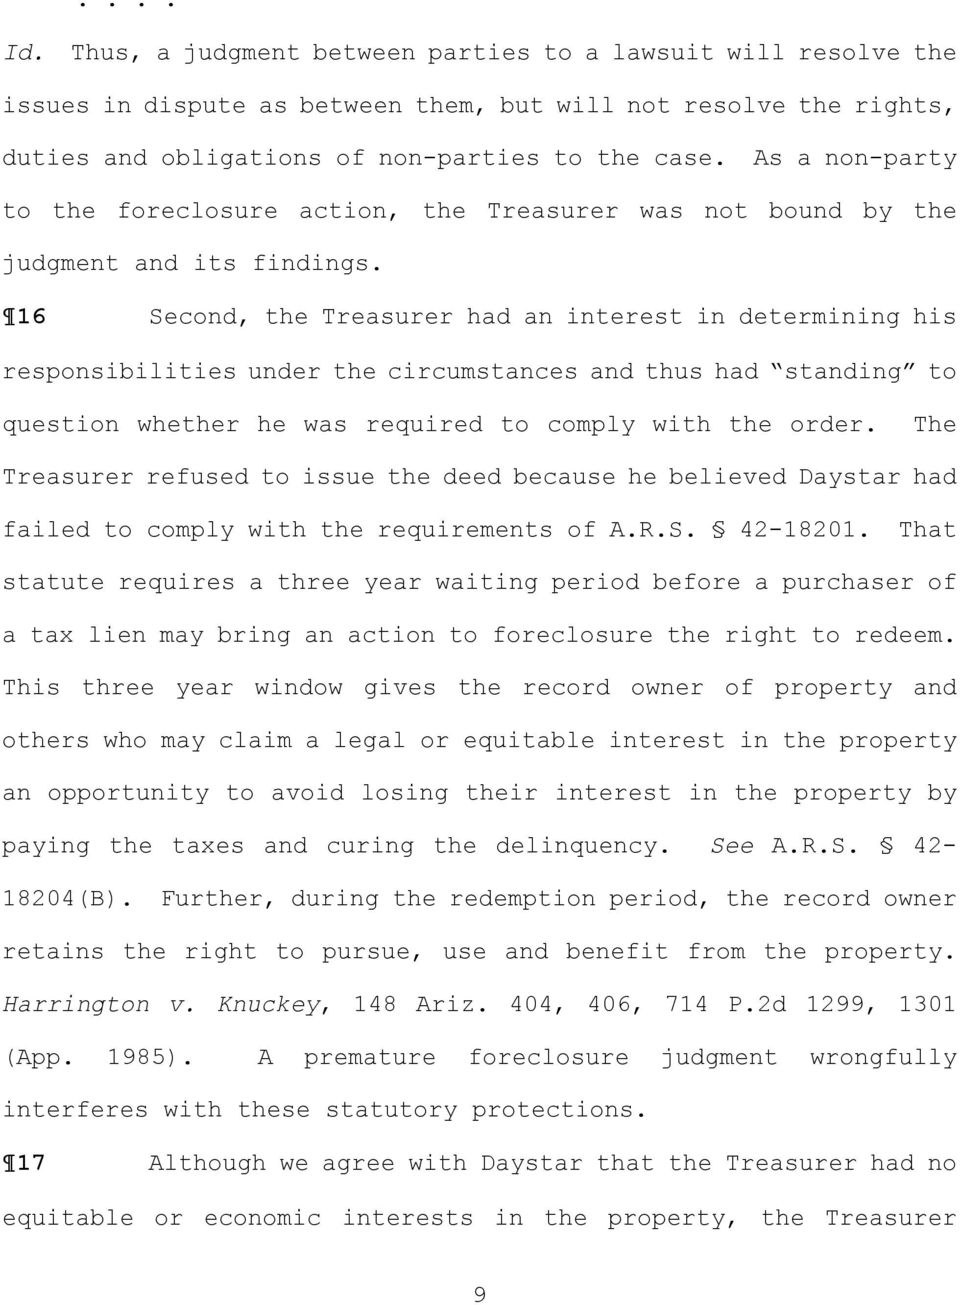 16 Second, the Treasurer had an interest in determining his responsibilities under the circumstances and thus had standing to question whether he was required to comply with the order.